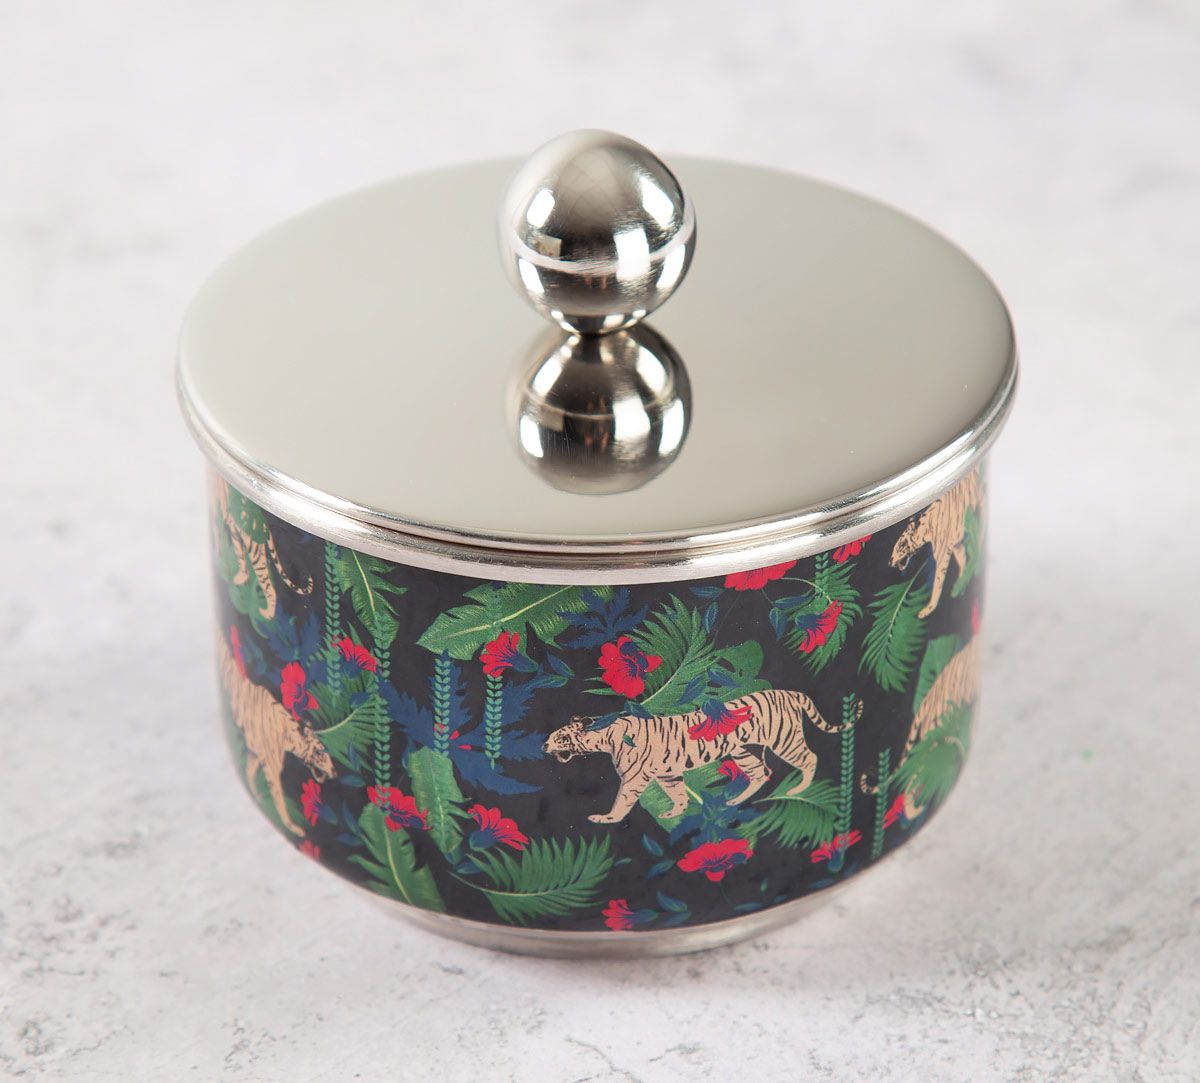 India Circus Tropical Tiger Steel Bowl with Lid